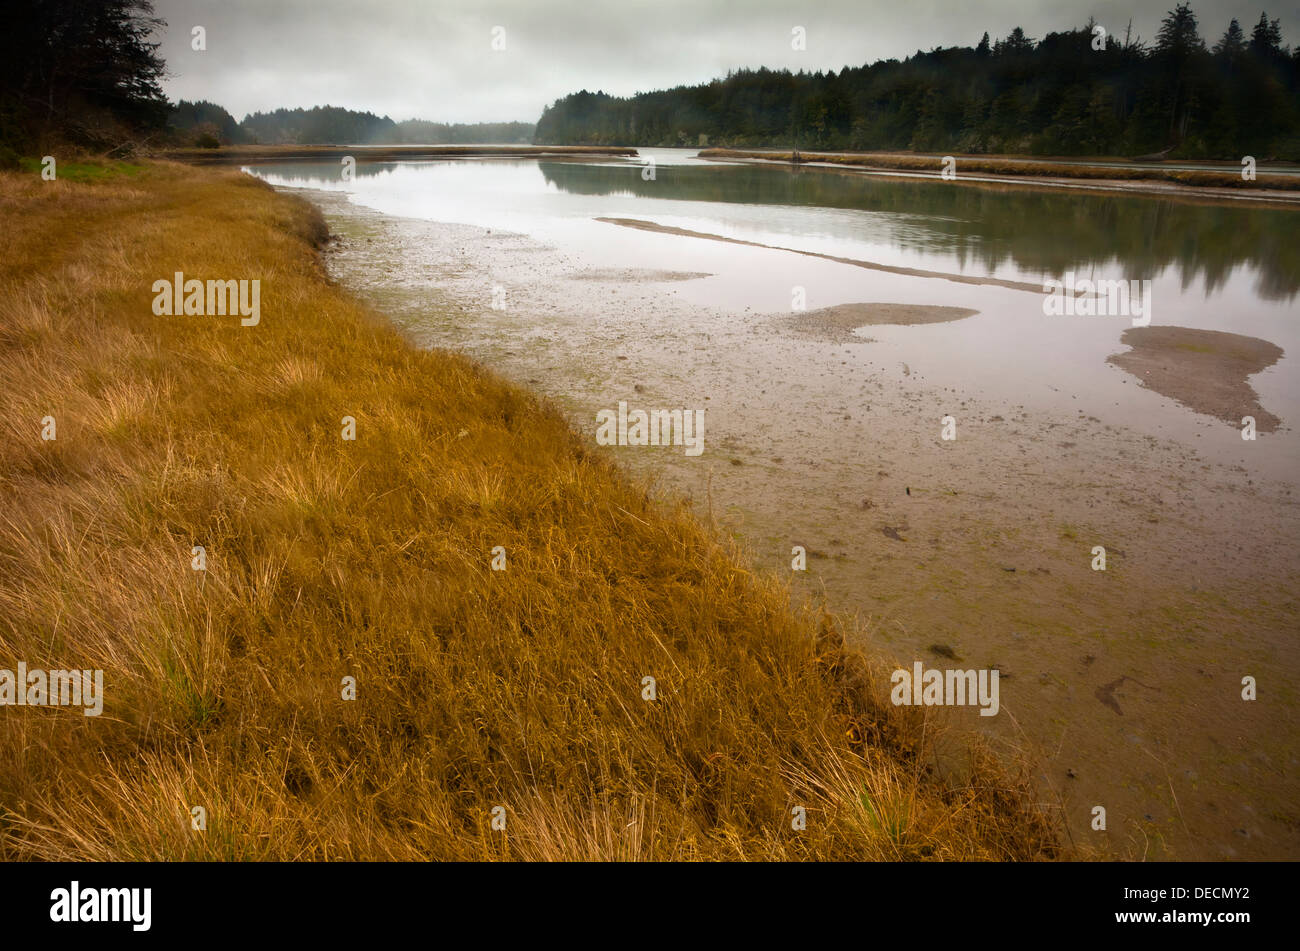 OREGON -The South Slough from the Marshside Spur Trail in the South Slough National Estuarine Research Reserve. - Stock Image